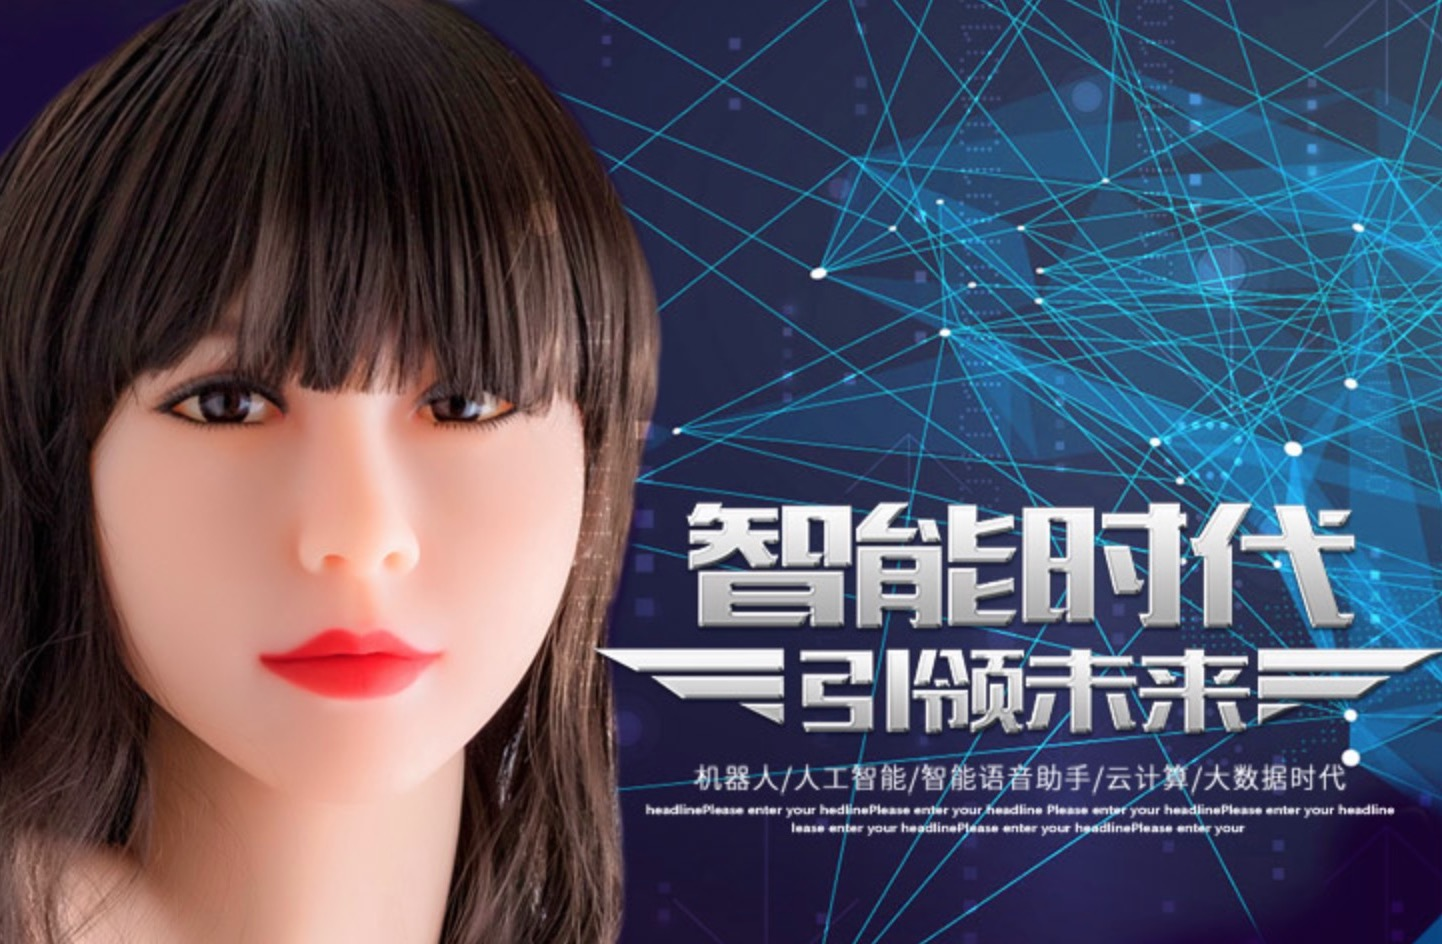 WATCH: High-Tech Sex Doll Talks Using AI in South China